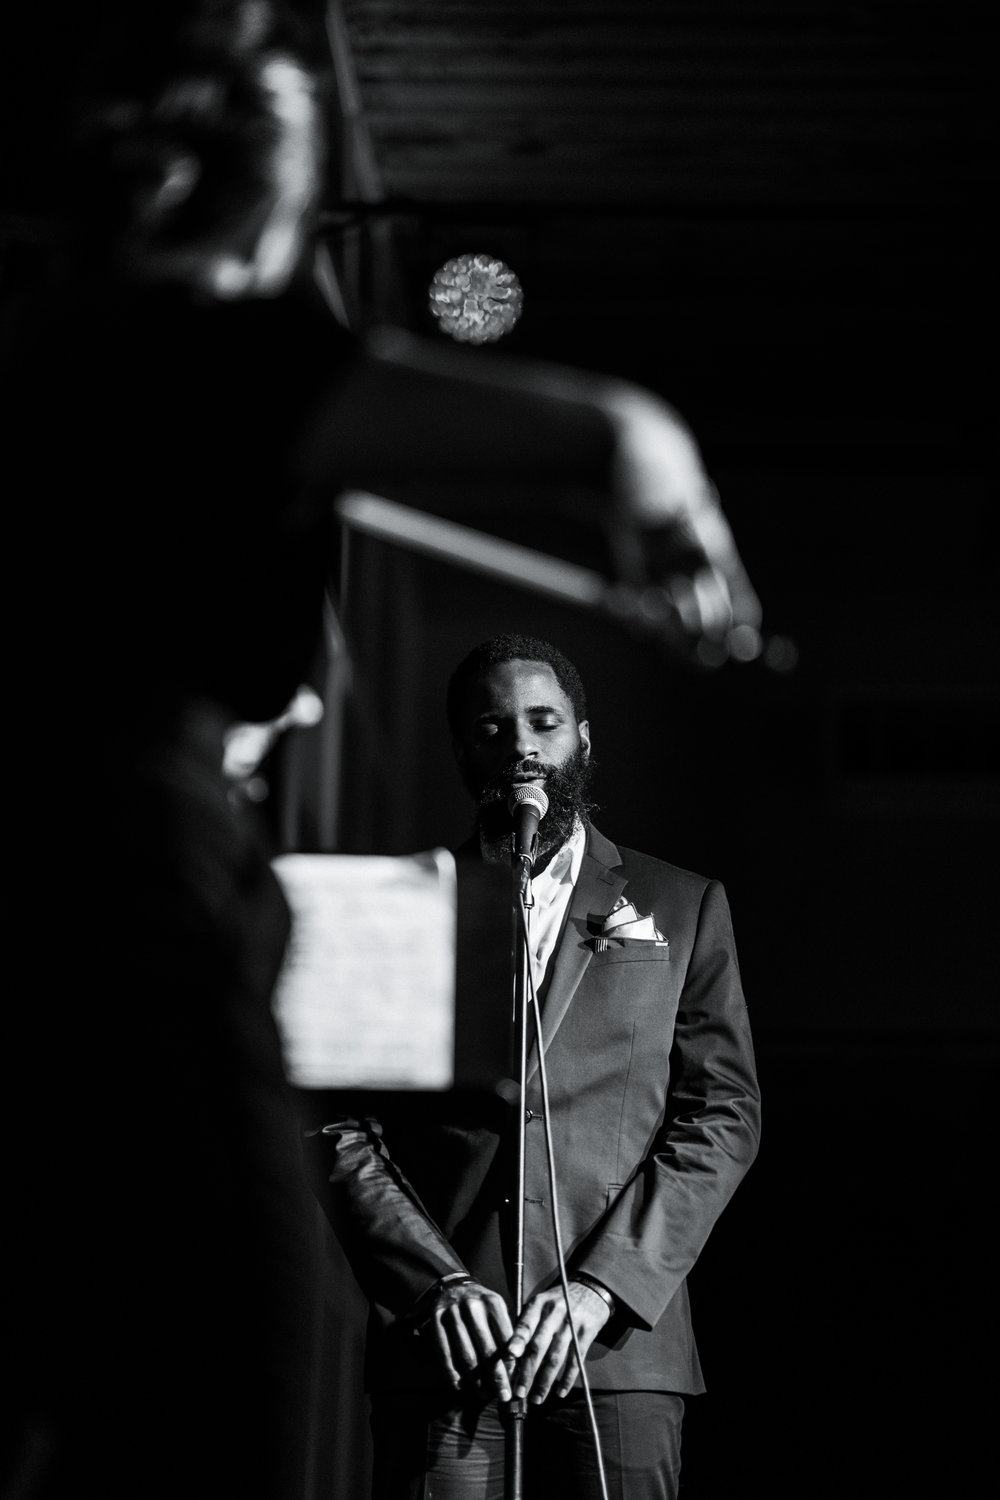 Harold Green, spoken word artist. Performing with us at the Promontory.